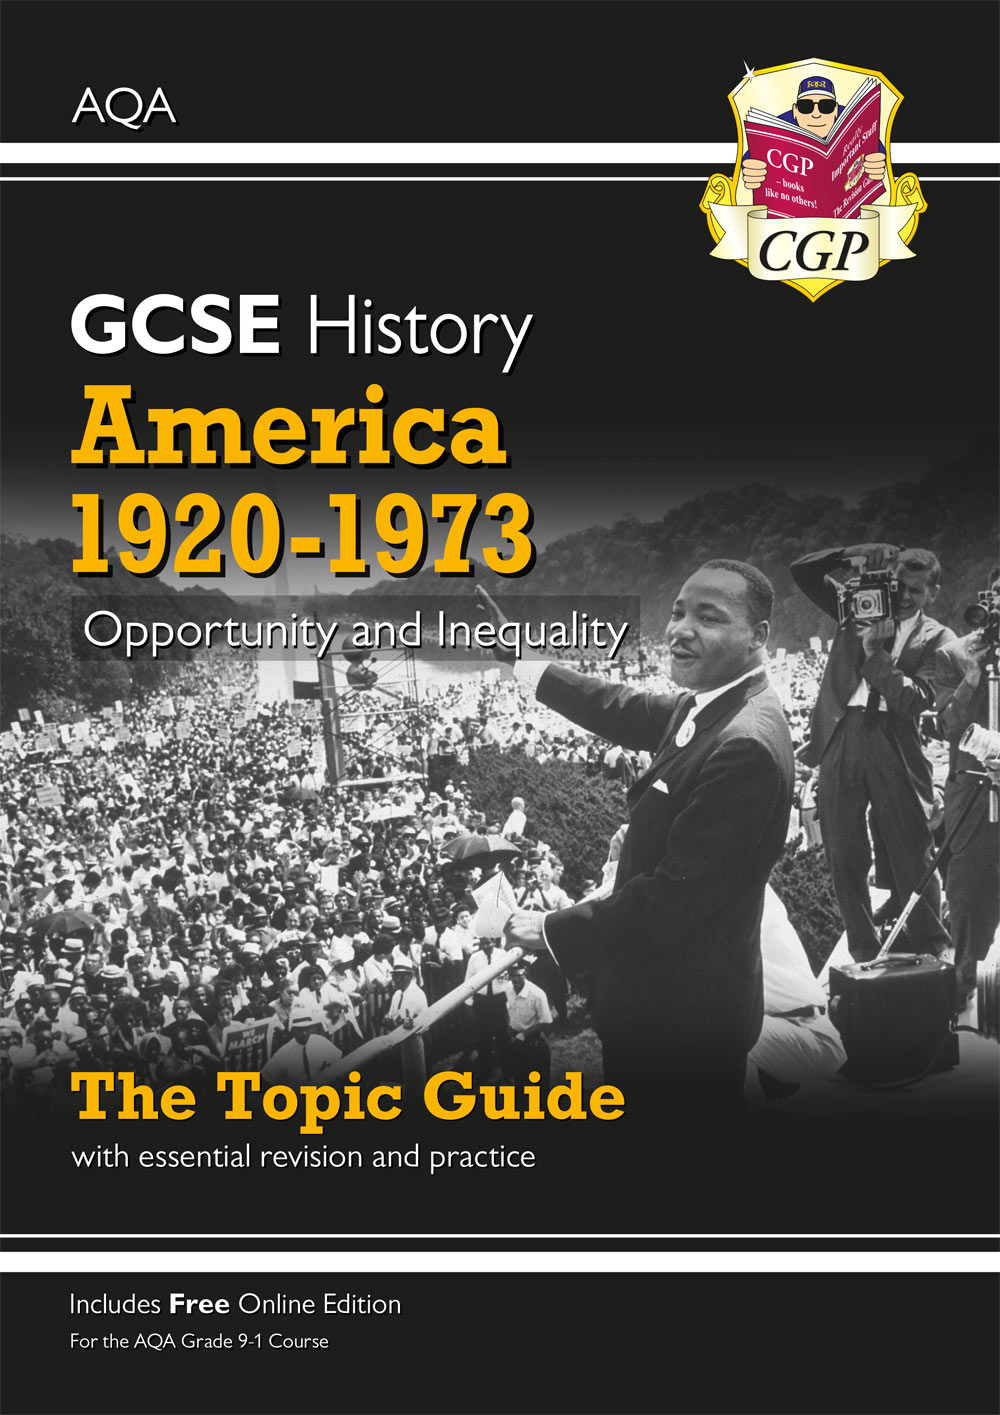 HAAOO41 - New Grade 9-1 GCSE History AQA Topic Guide - America, 1920-1973: Opportunity and Inequalit